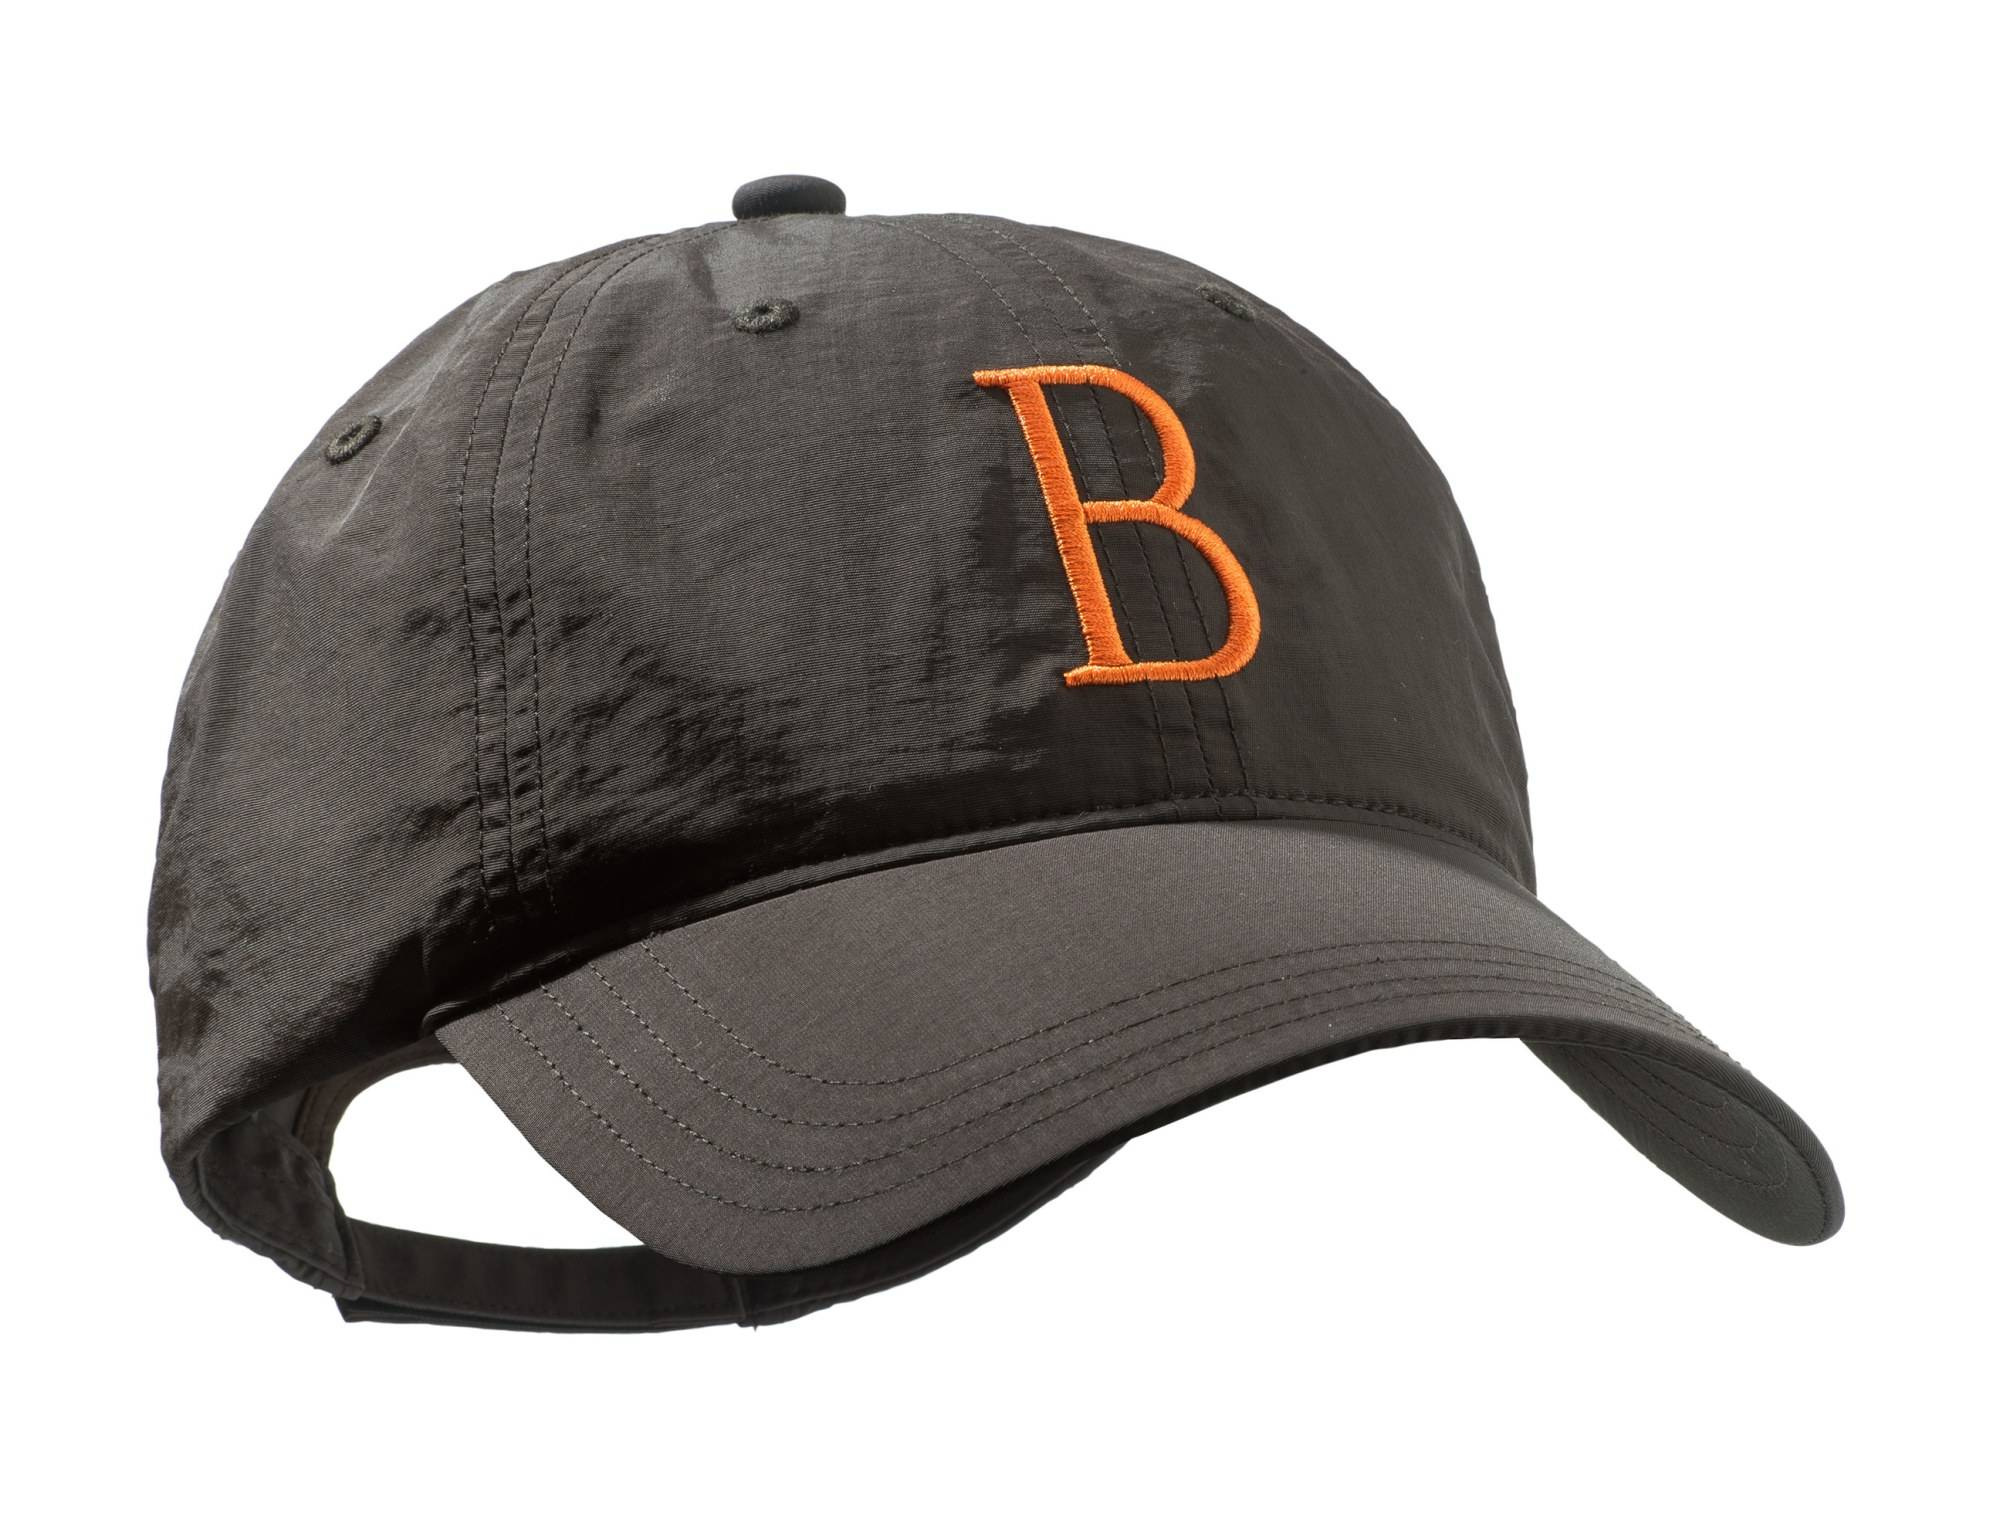 Beretta Big B Hat lippis